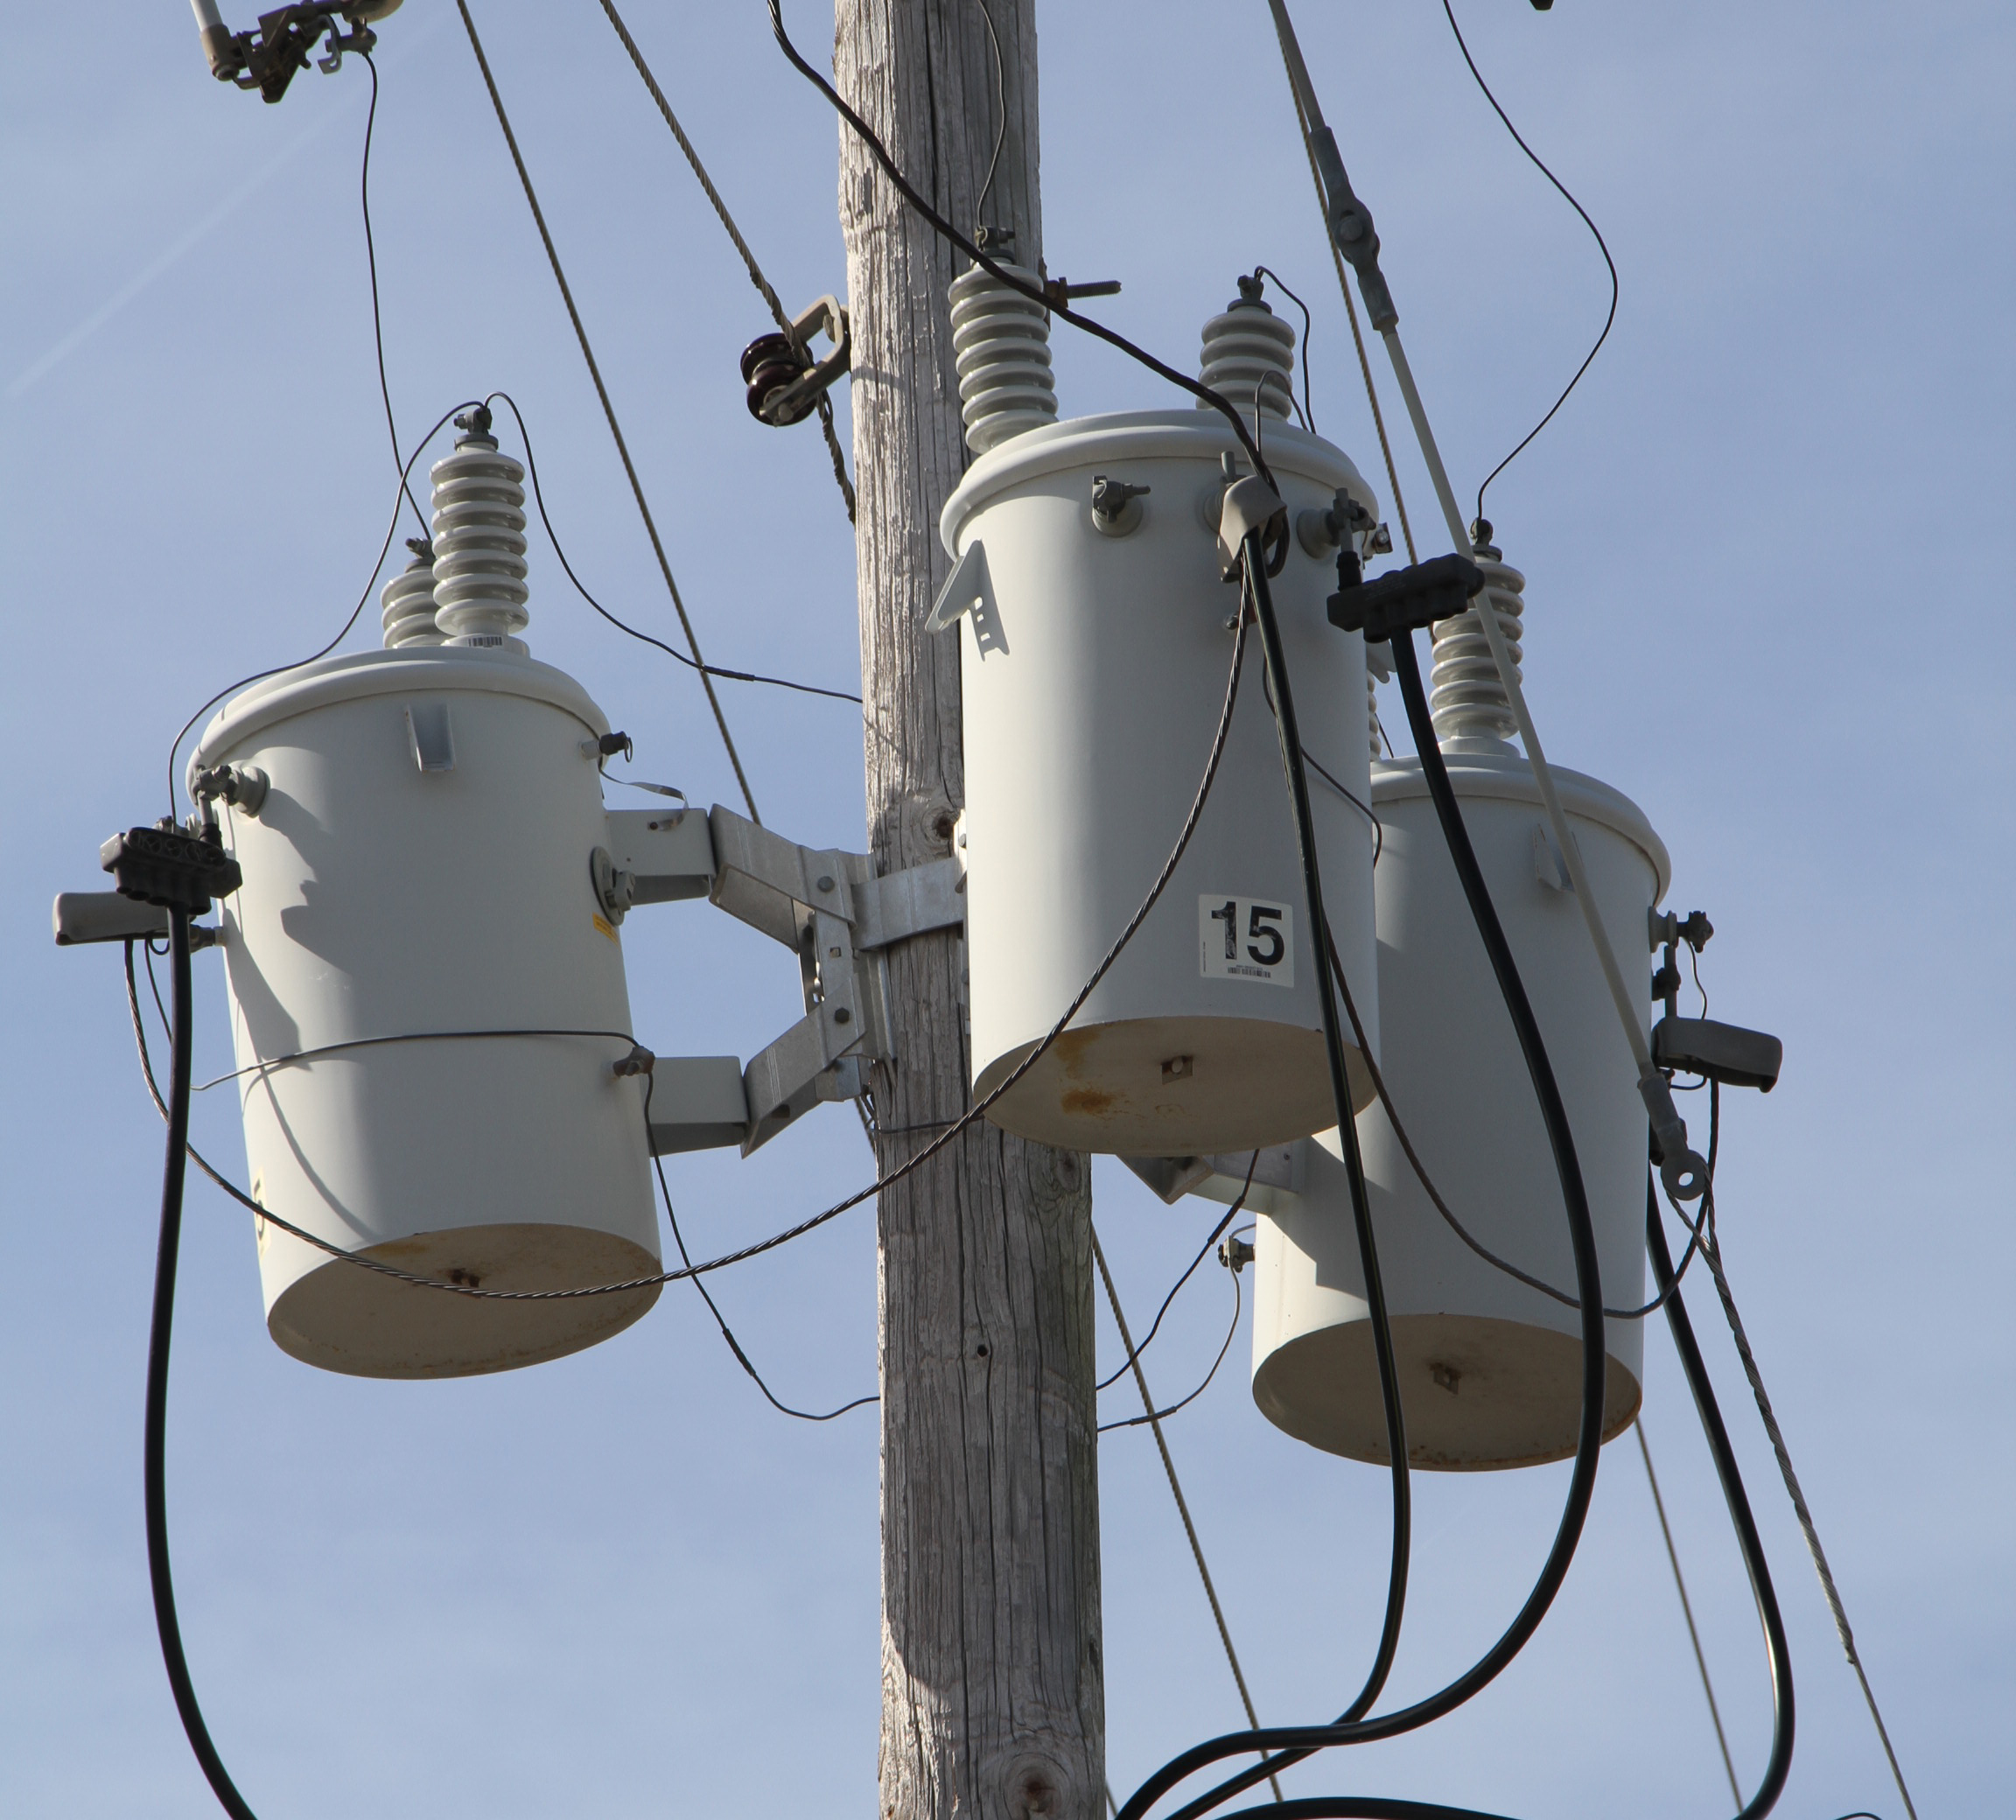 Three White Distribution Transformers On Pole With Light